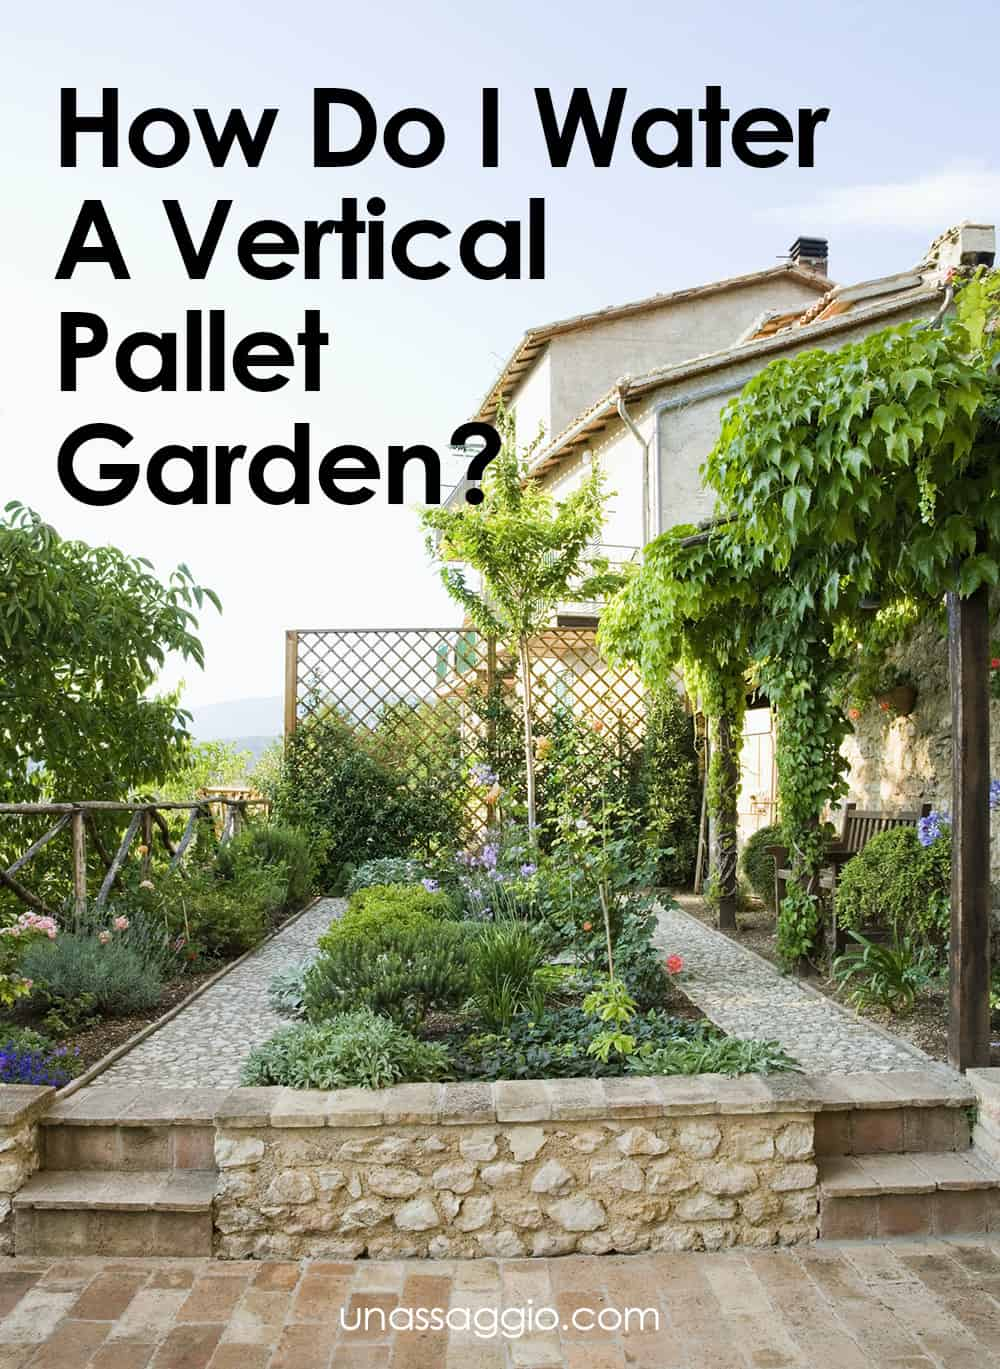 How Do I Water A Vertical Pallet Garden?